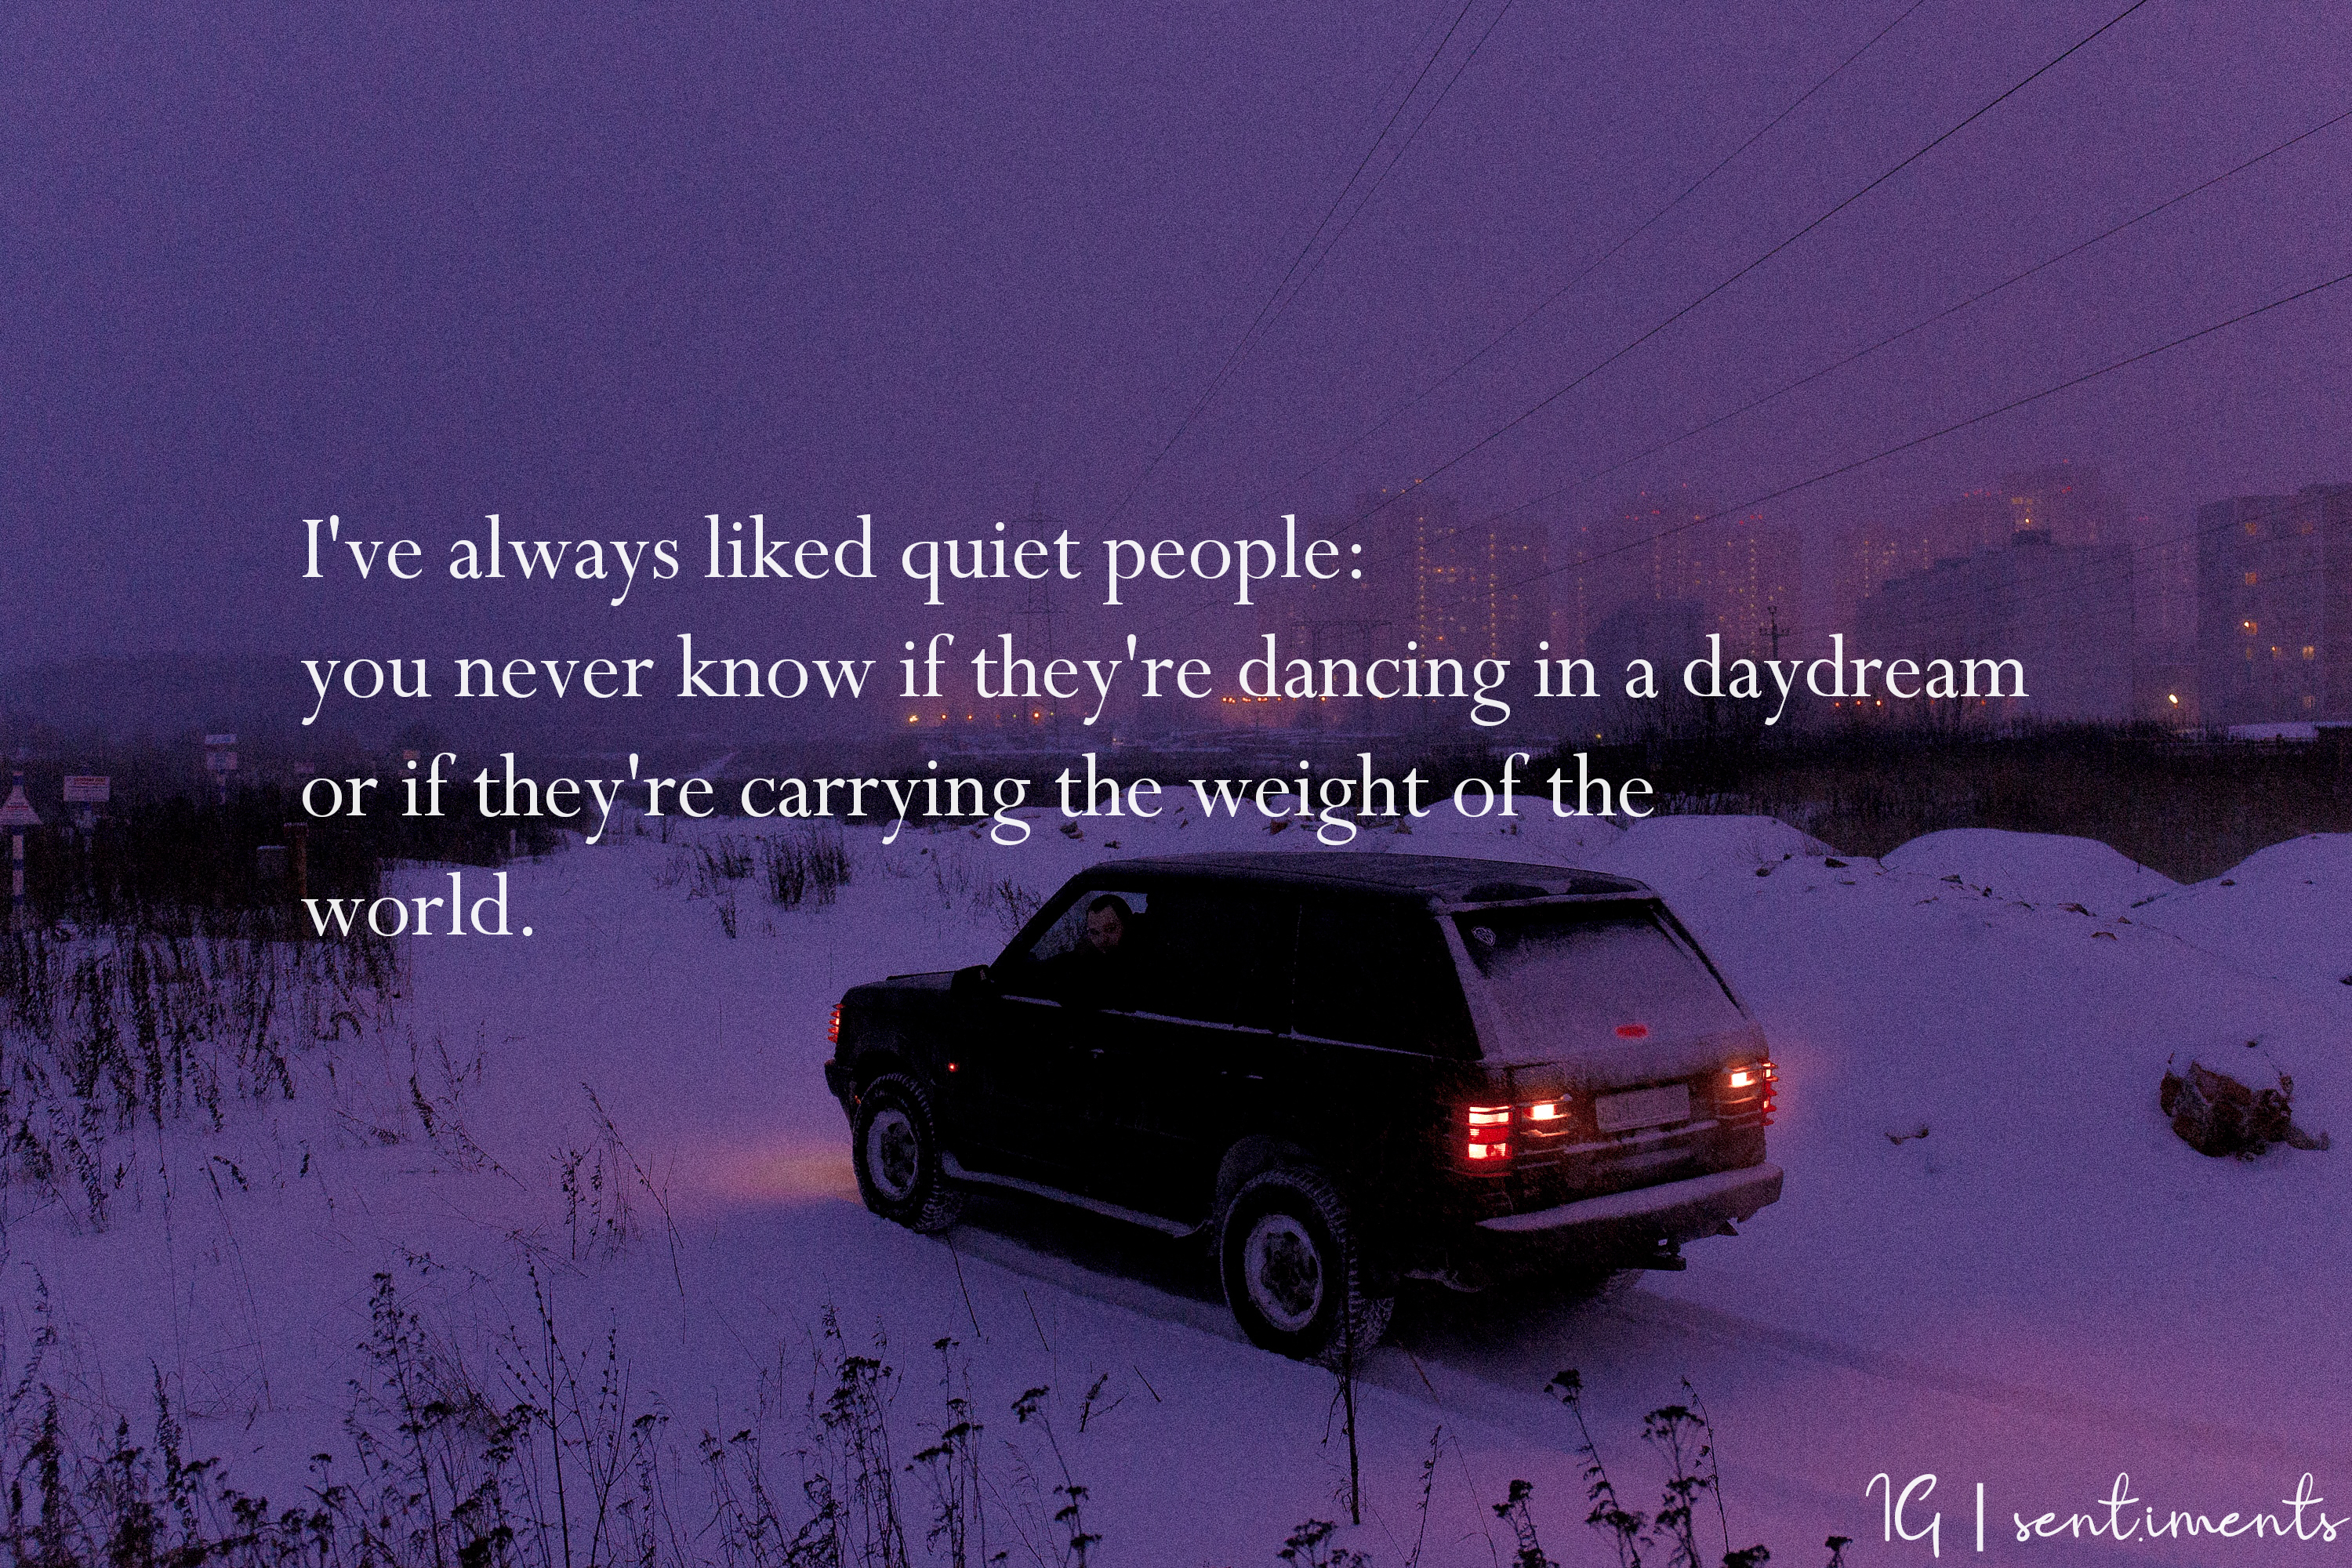 """I've always liked quiet people: you never know if they're dancing in a daydream or if they're carrying the weight of the world."" by John Green [3000 X 2000]"